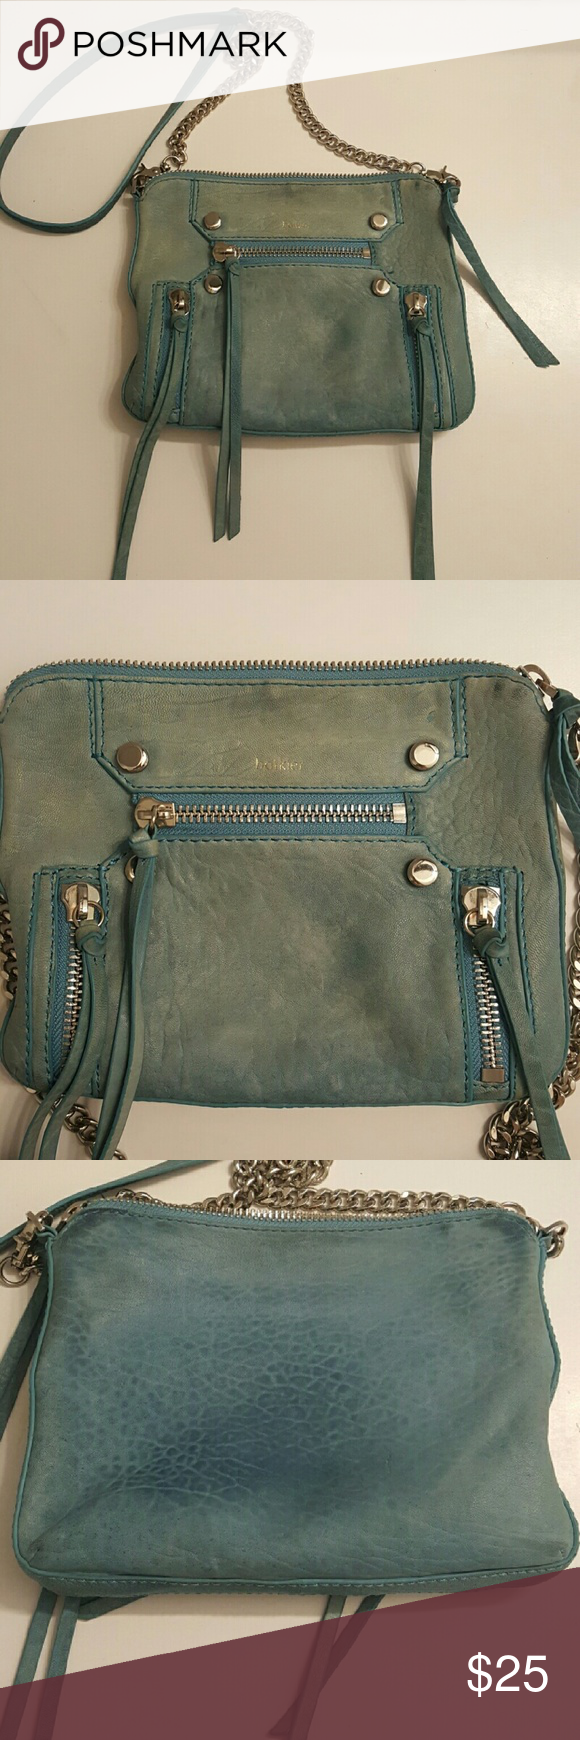 Botkier Logan Crossbody Purse Light blue Botkier Cross Body Purse. Was very loved. Does have some discoloration on back from jeans shown in 3rd photo and around edges from everyday use. No rips. 100% Leather. Botkier Bags Crossbody Bags